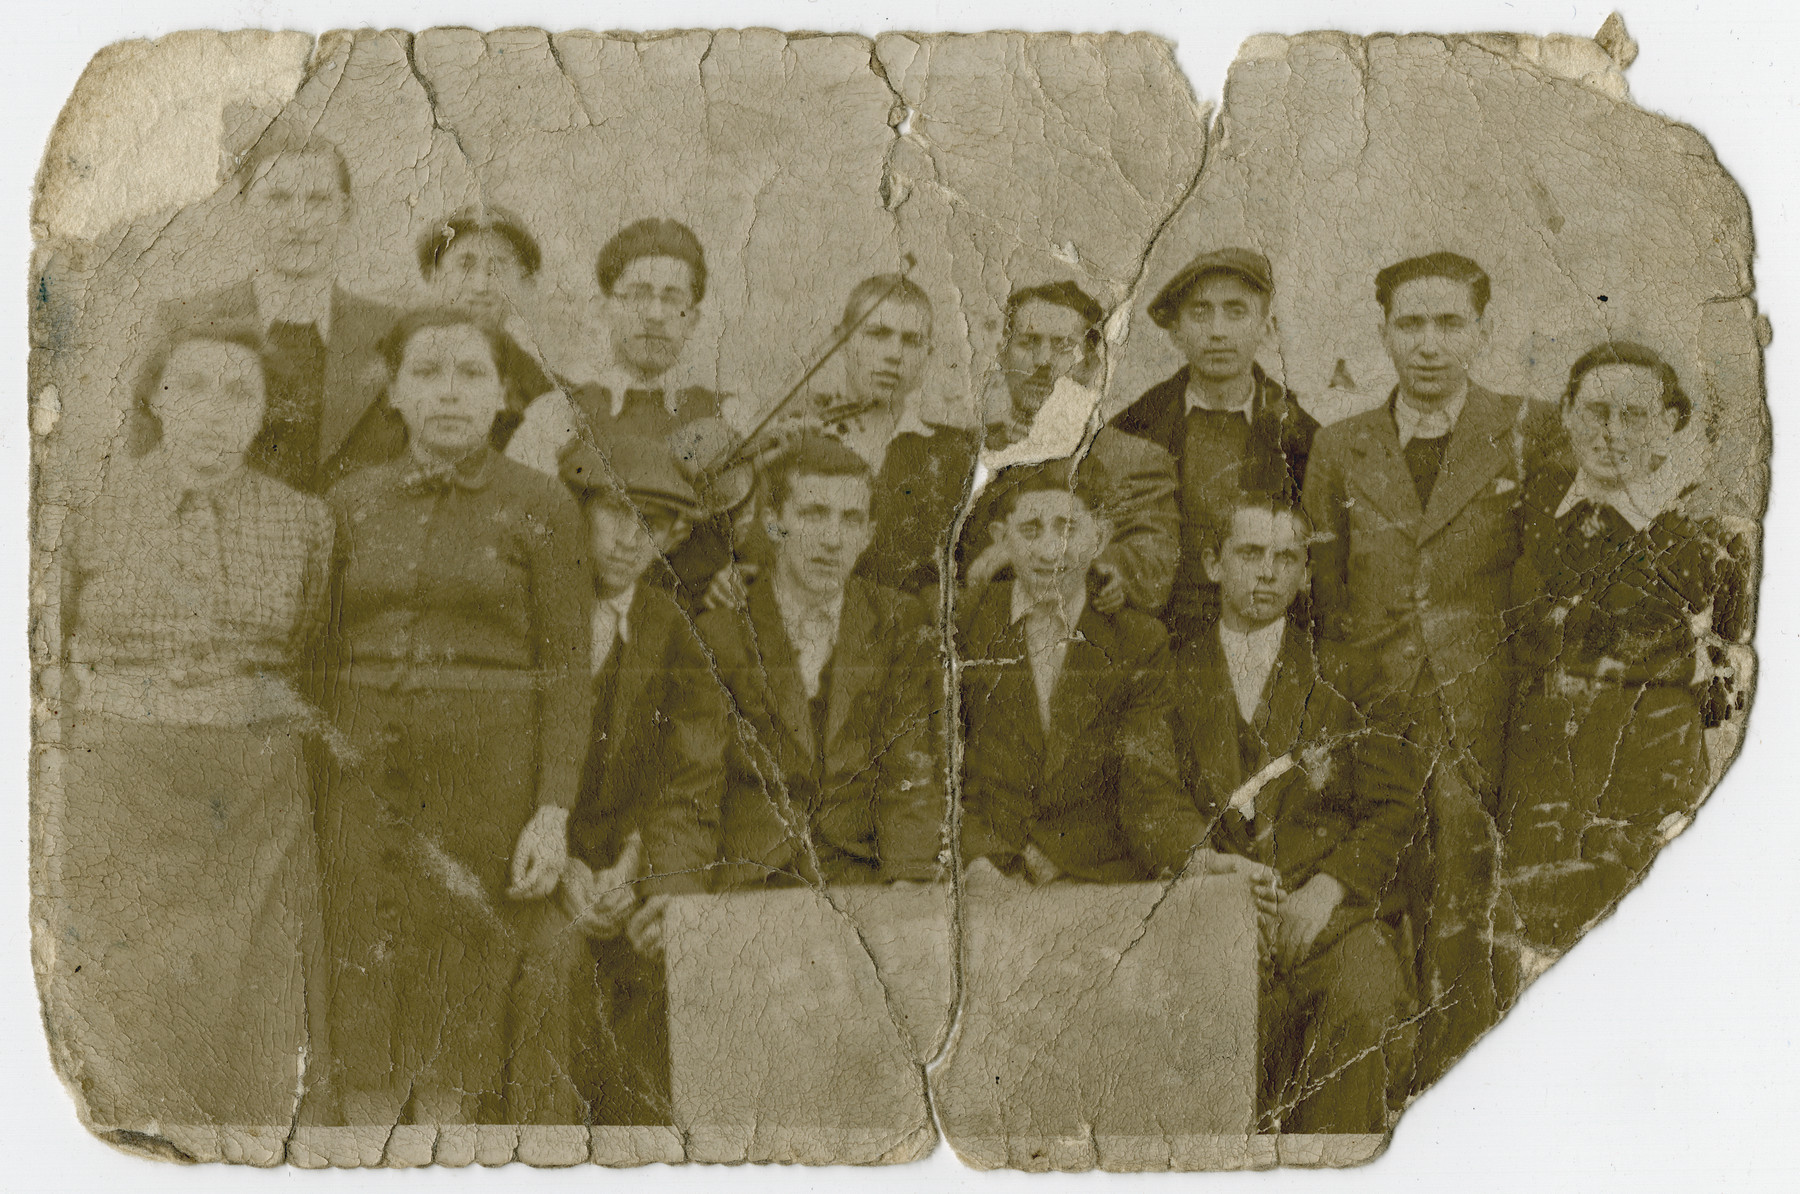 Group portrait of young Zionists in Hungary.    Israel Fried is pictured in the second row, third from the left.